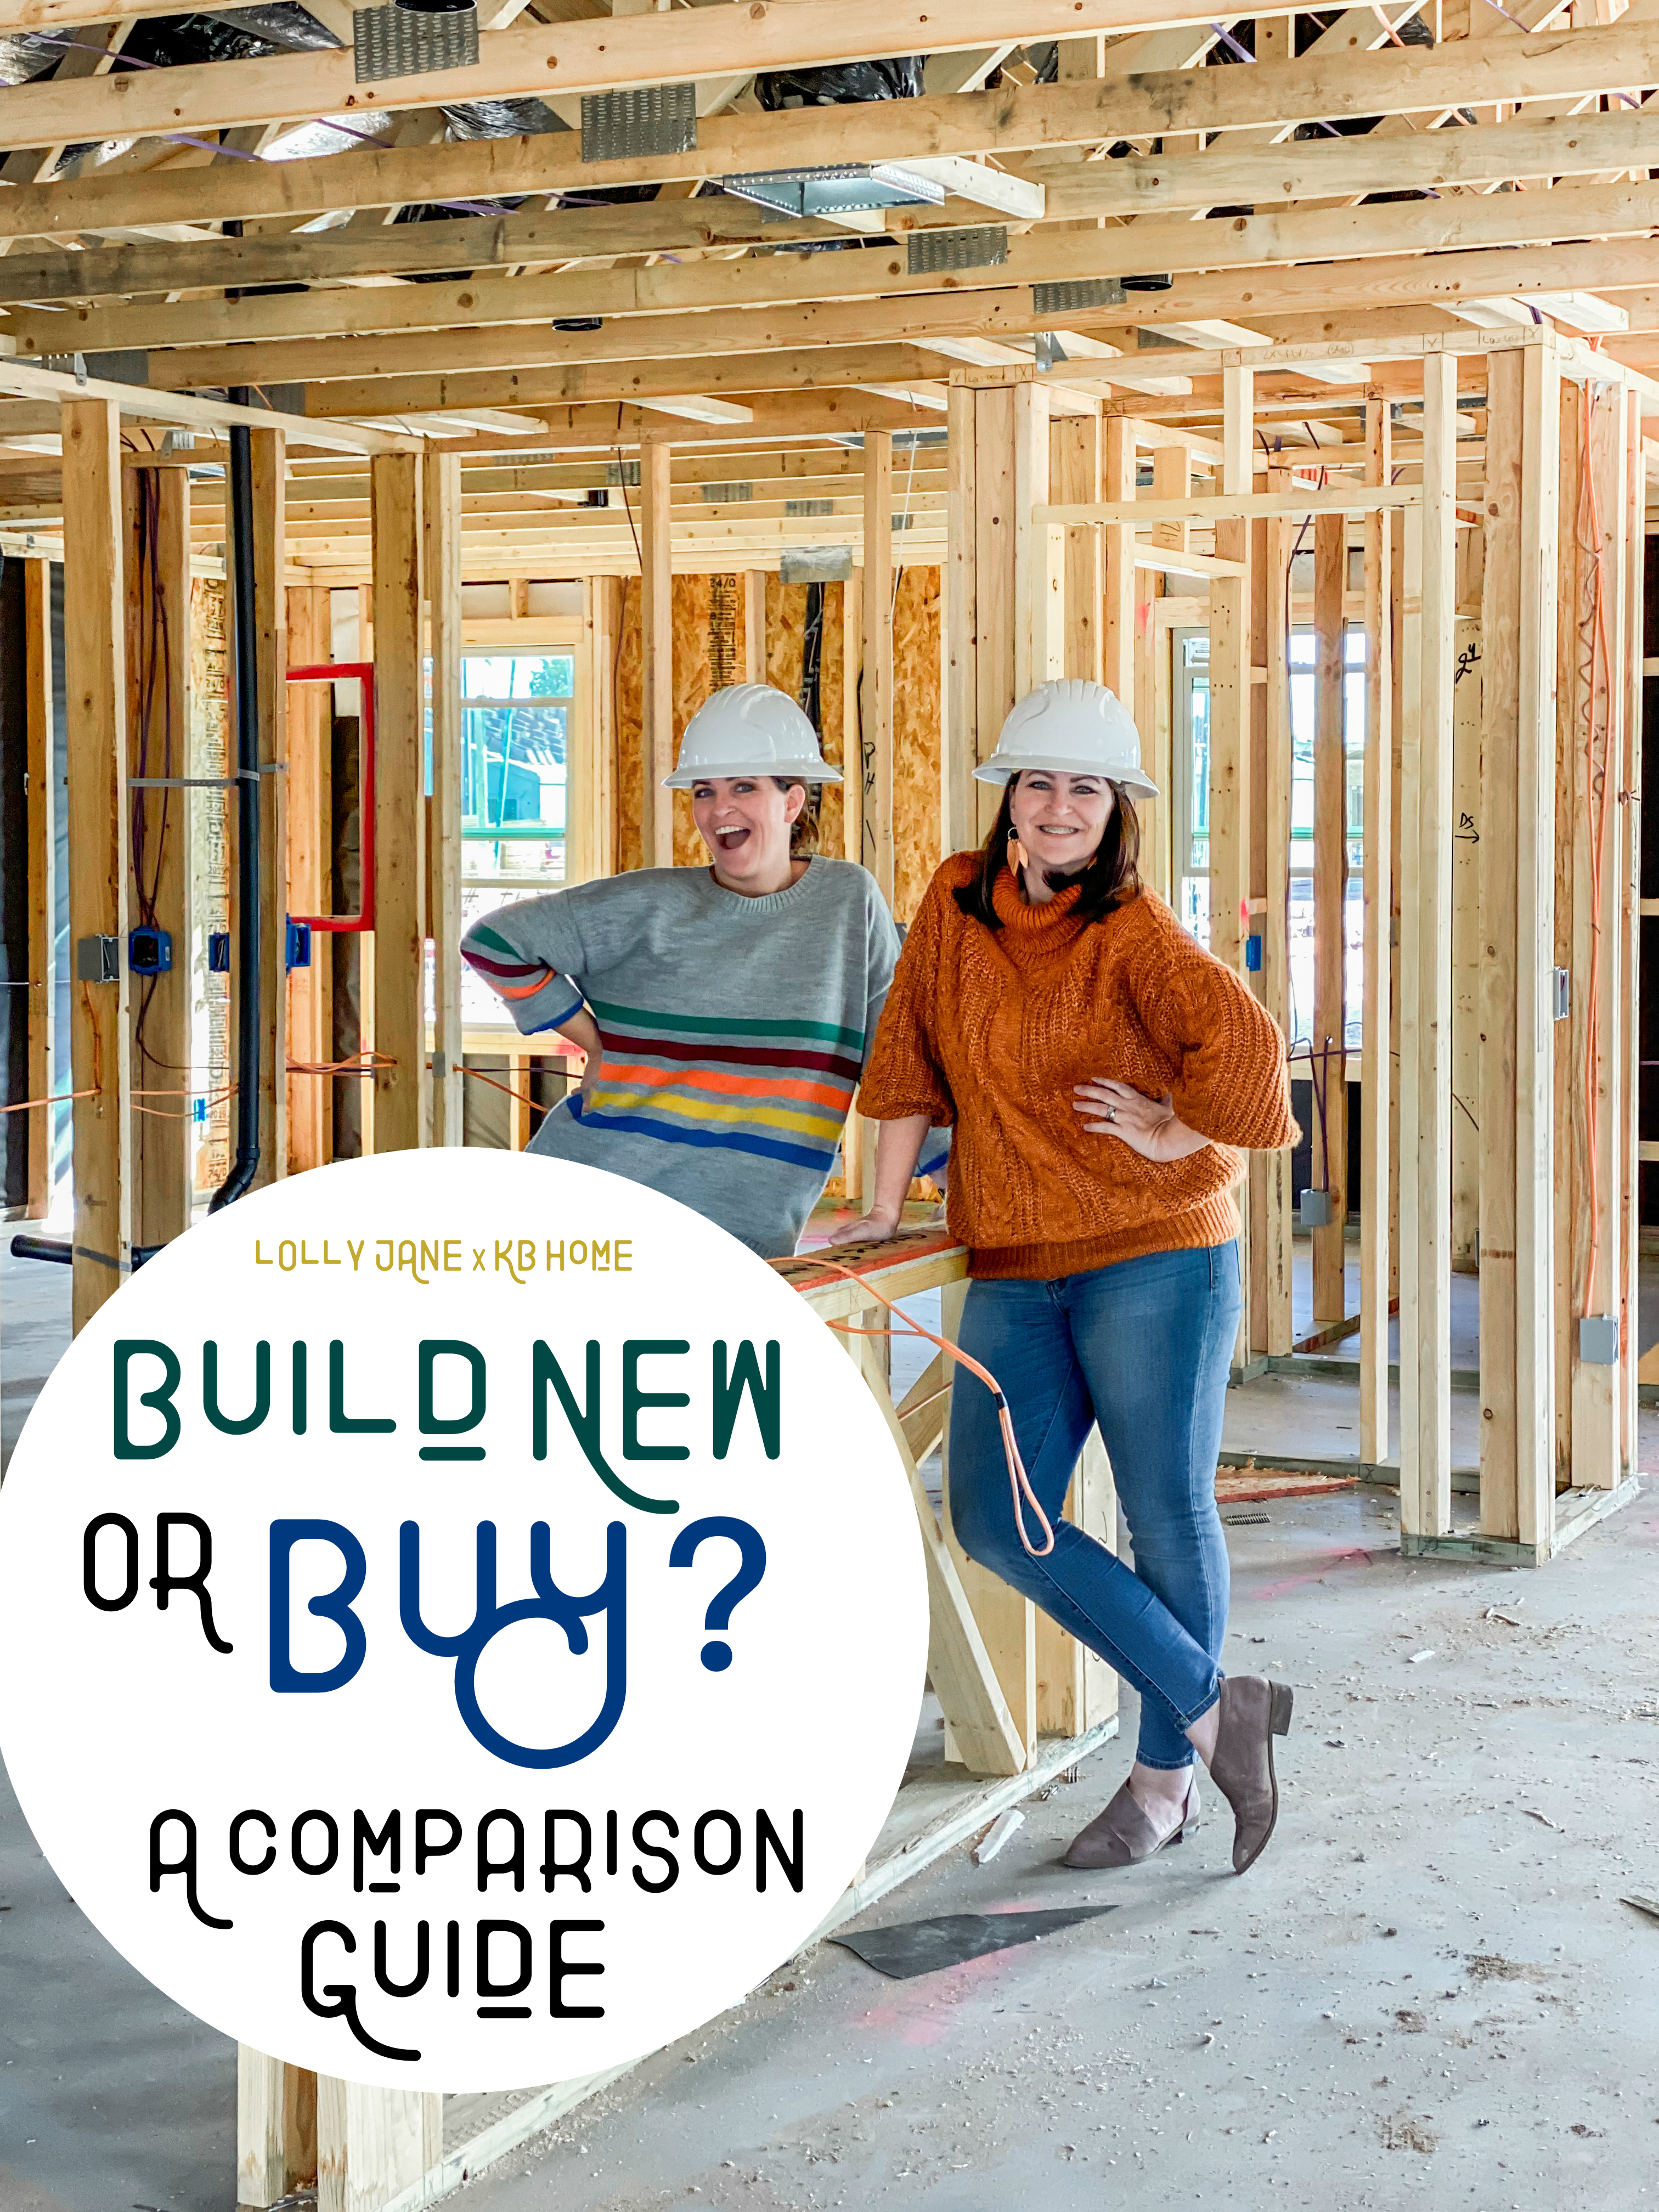 Considering BUILDING with a home builder vs. BUYING resale? Read on for our comparison! #newhome #welcomehome #KBHomes #KBHome